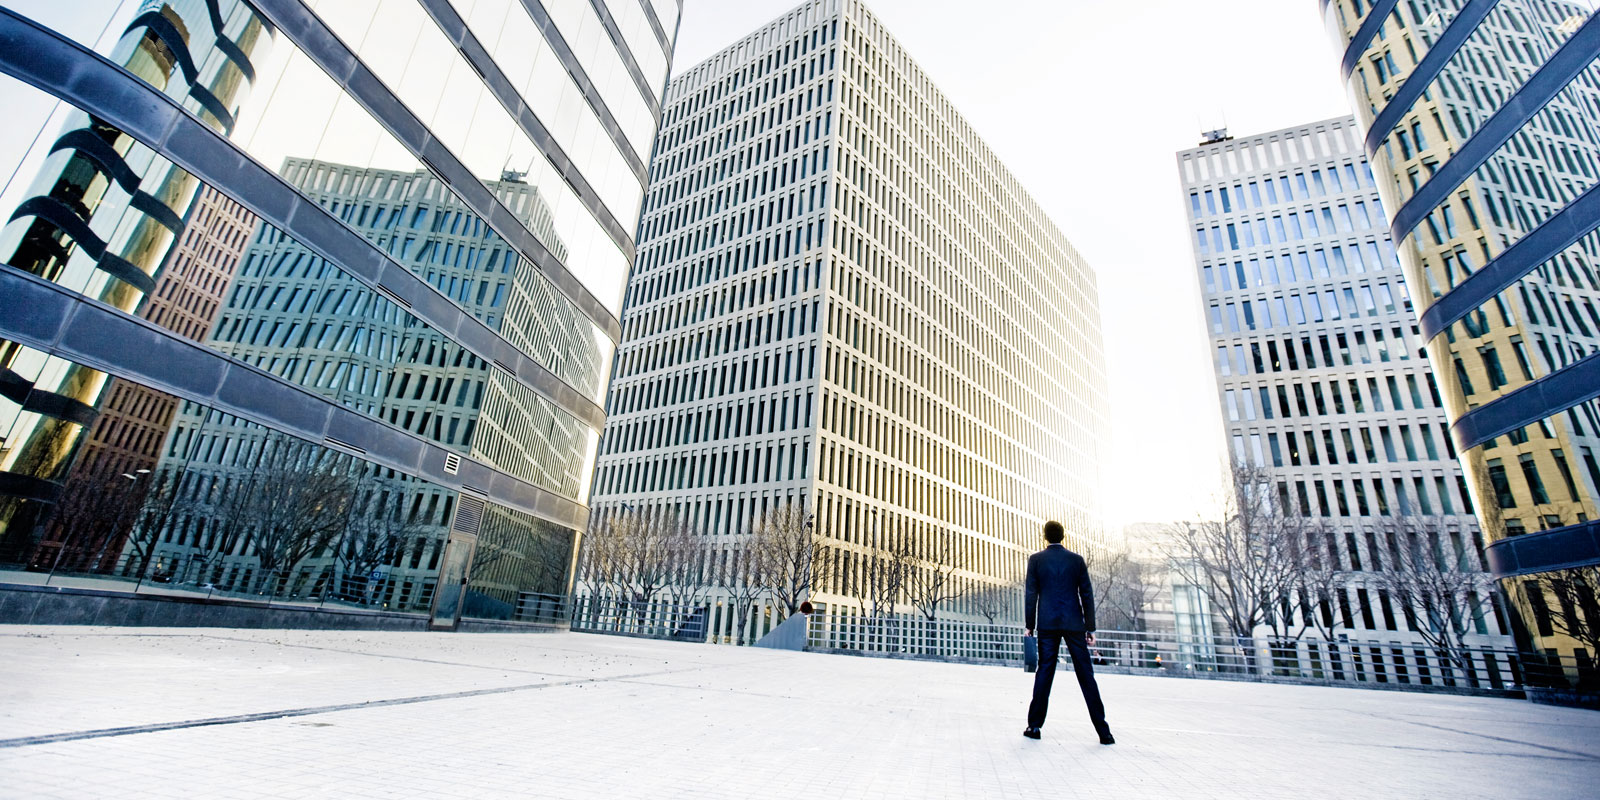 man standing in front of commercial buildings